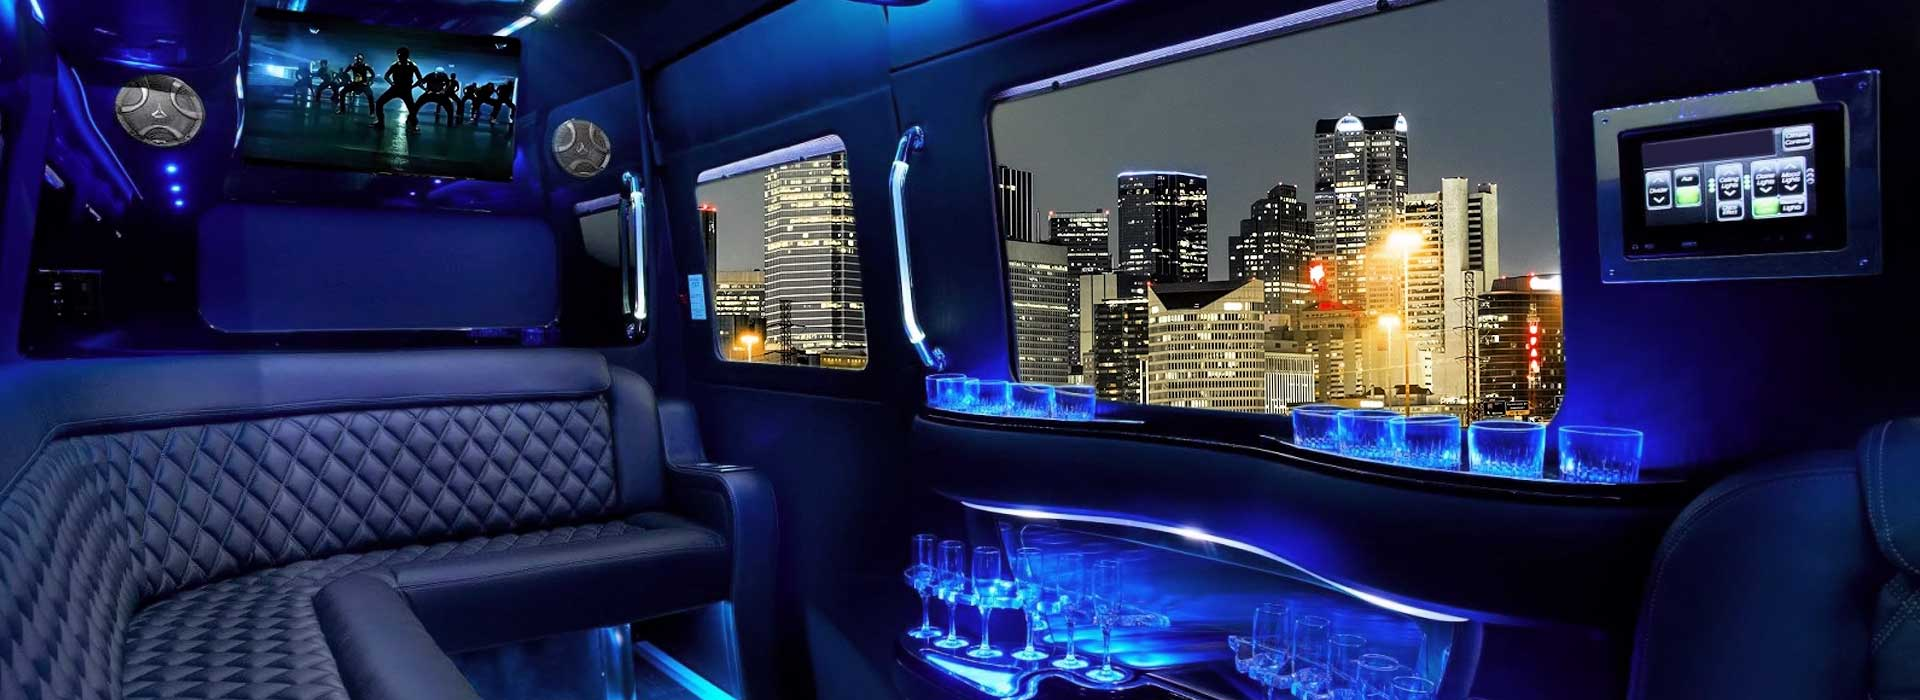 Car Service To Dfw: Limo Service Dallas